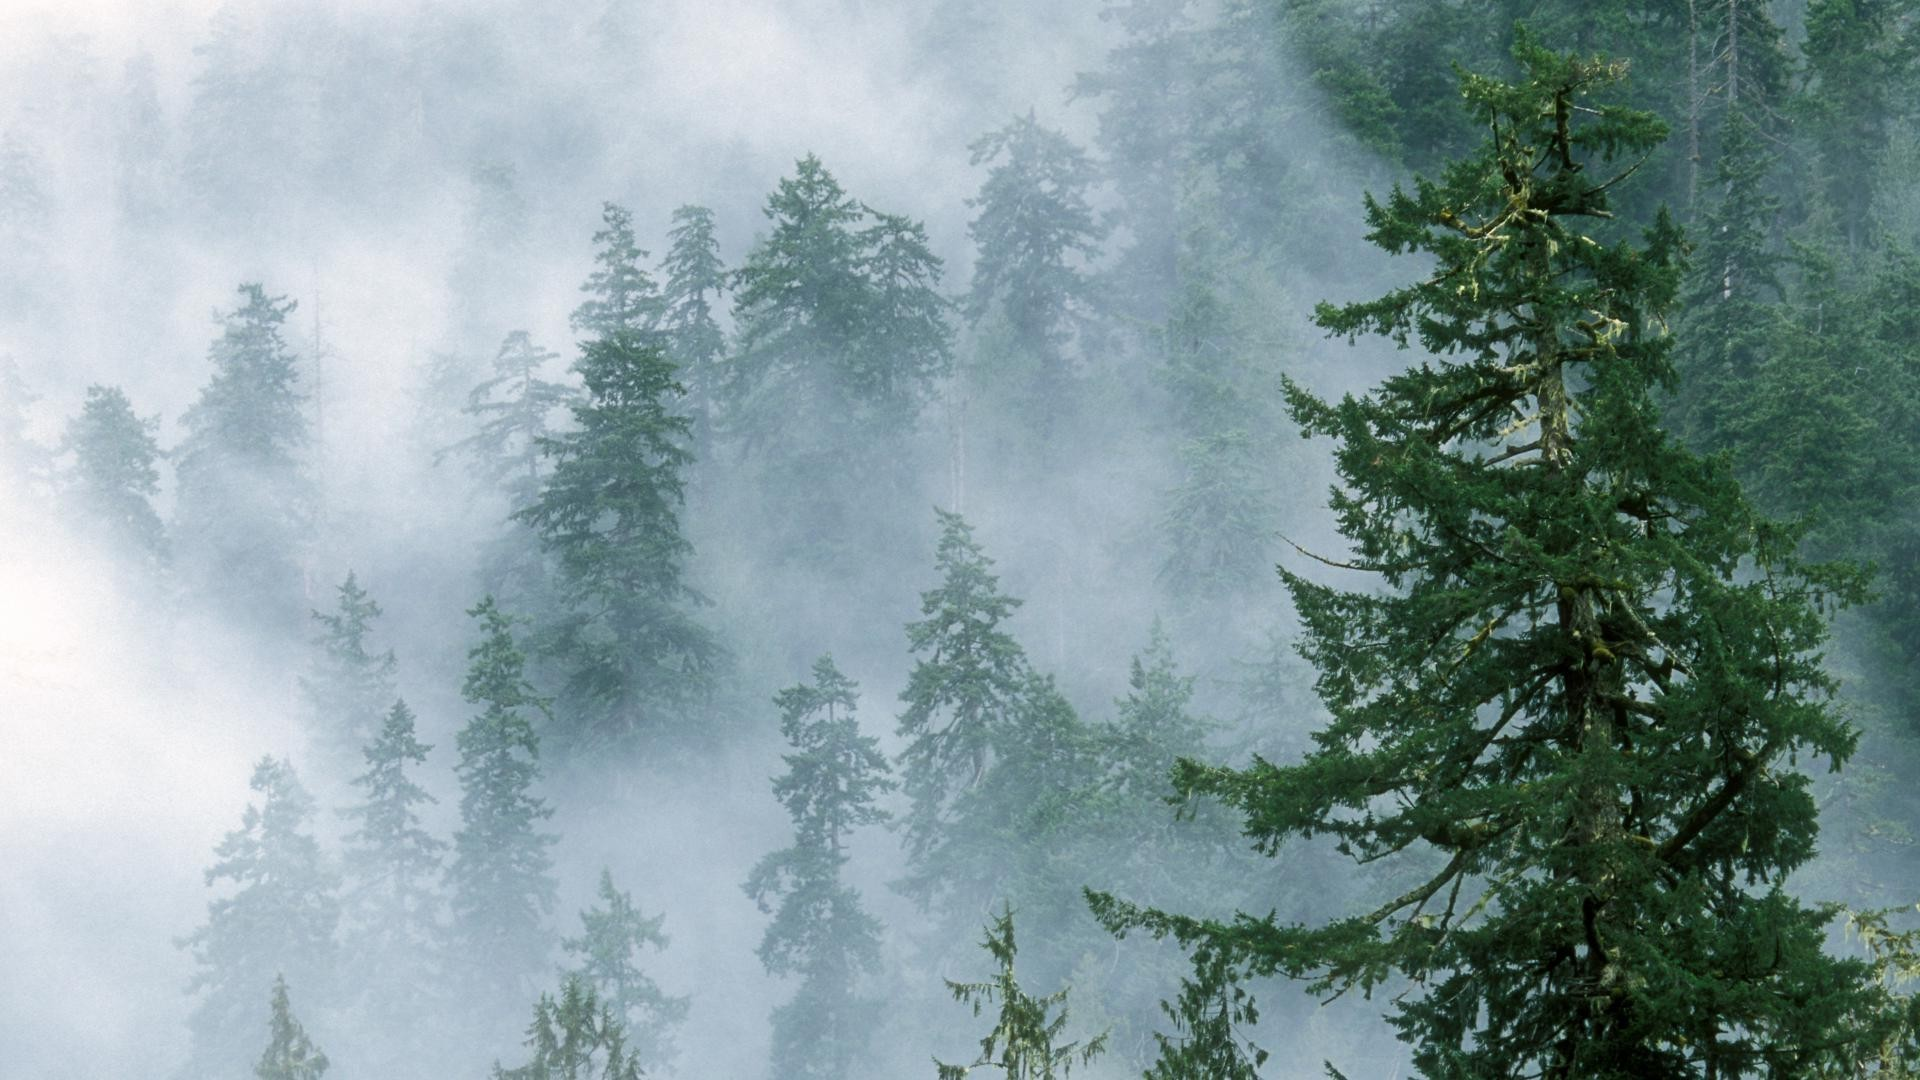 Foggy_Forest_Mountains_Tree.jpg